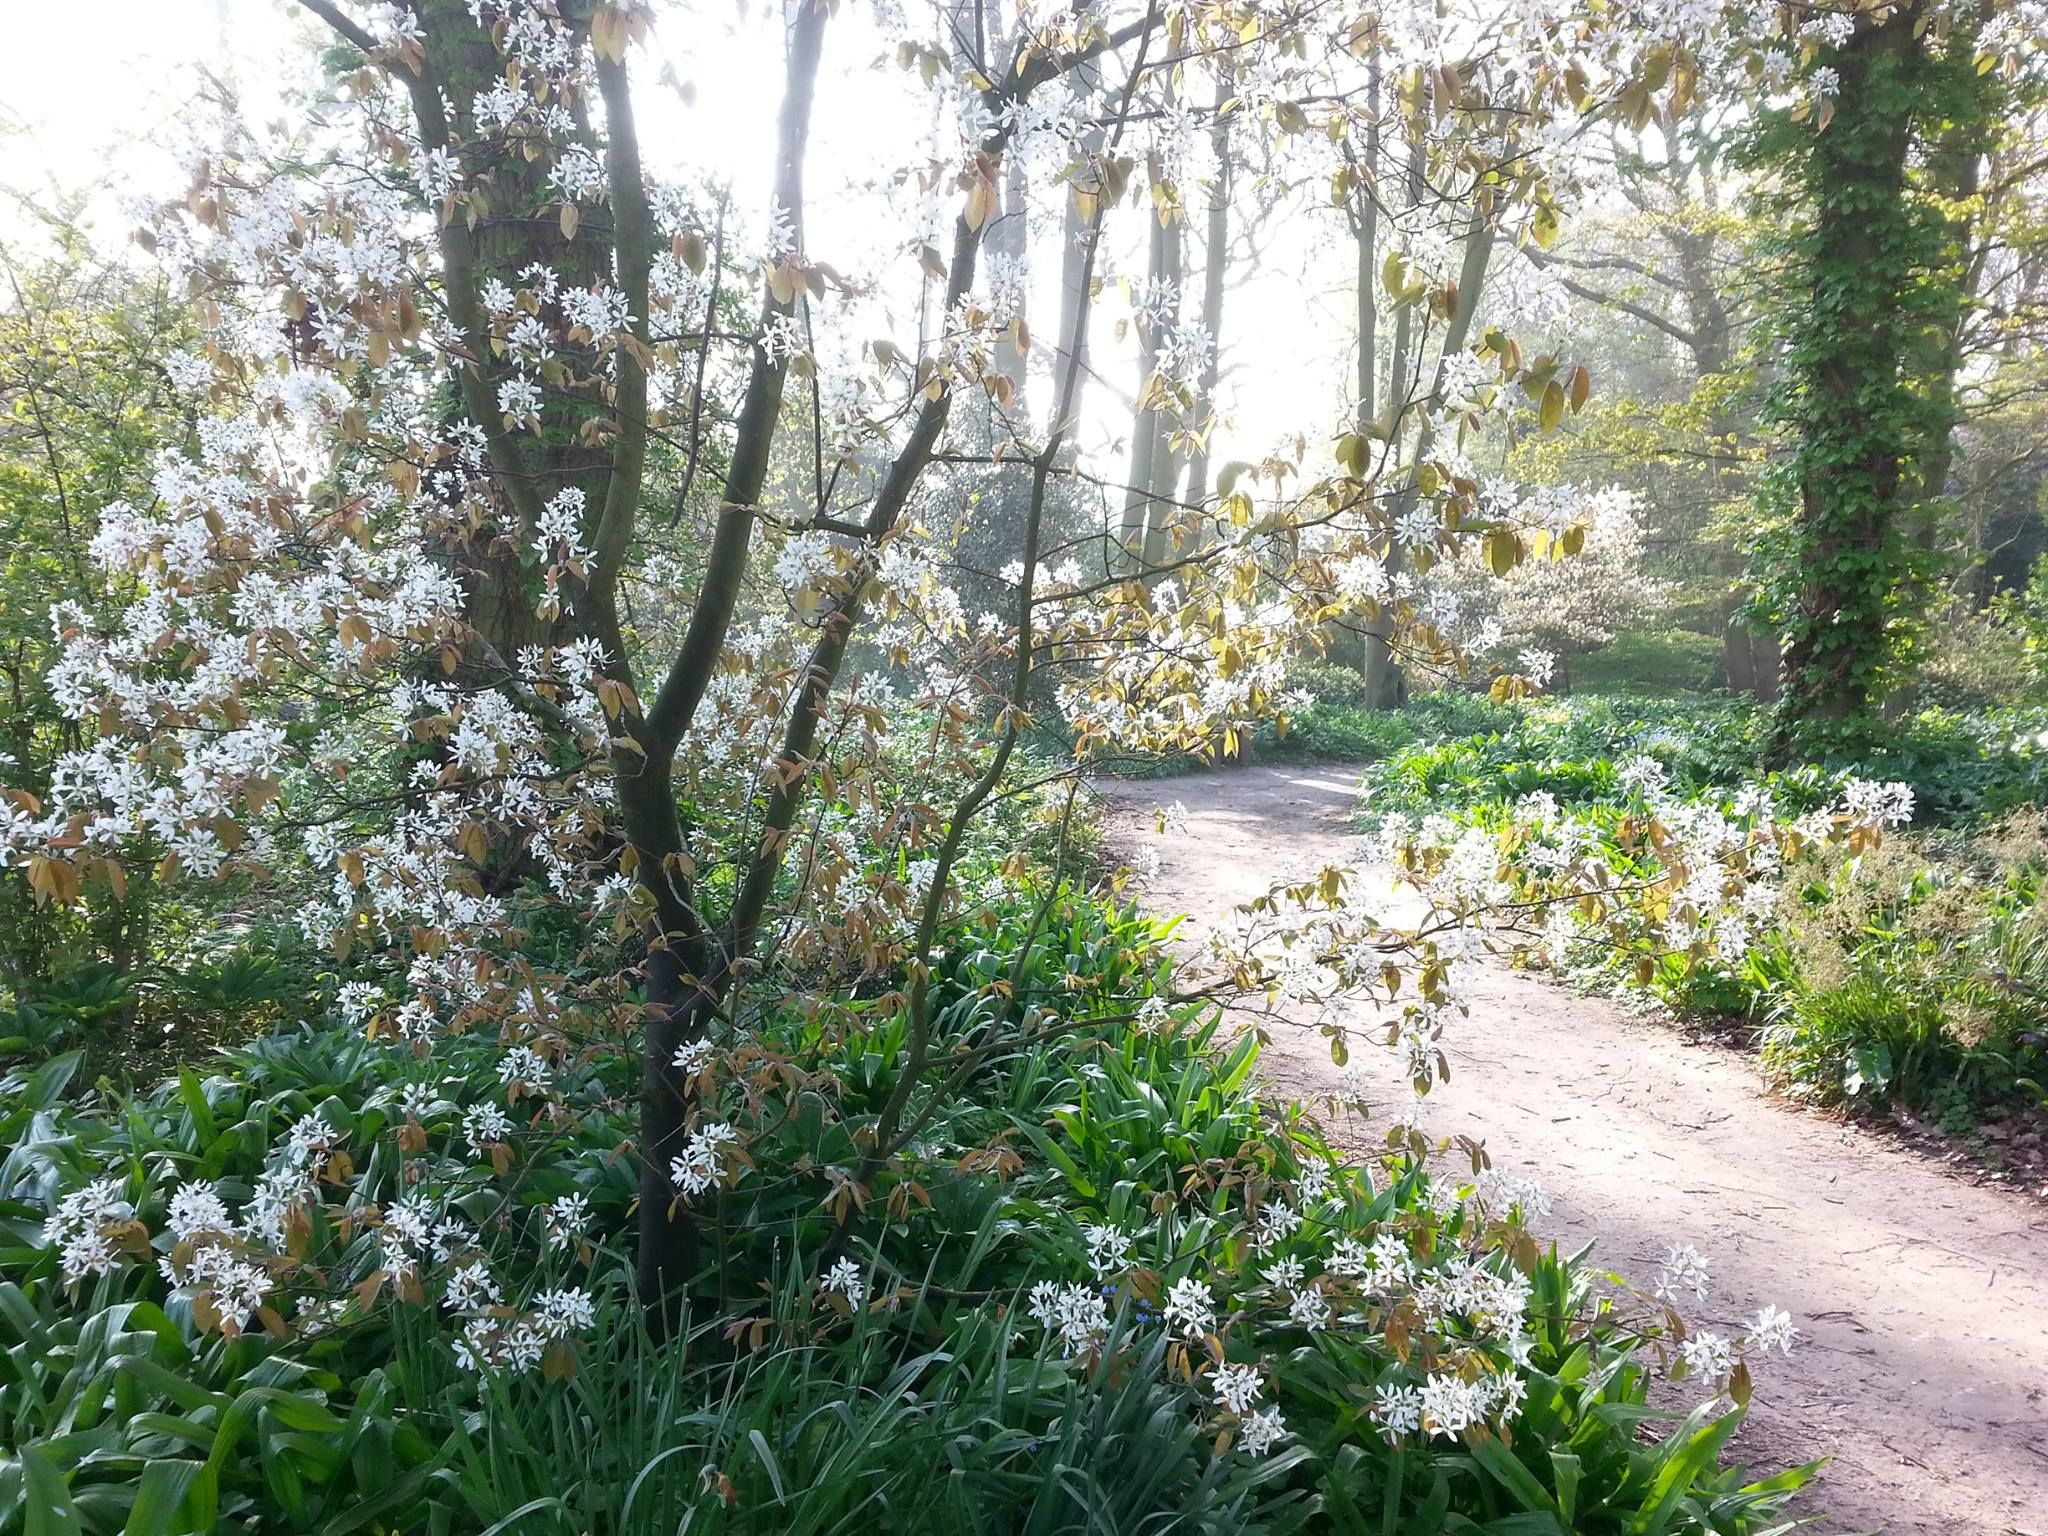 Amelanchier Lamarckii Or Snowy Mespilus Great Tree For A Small